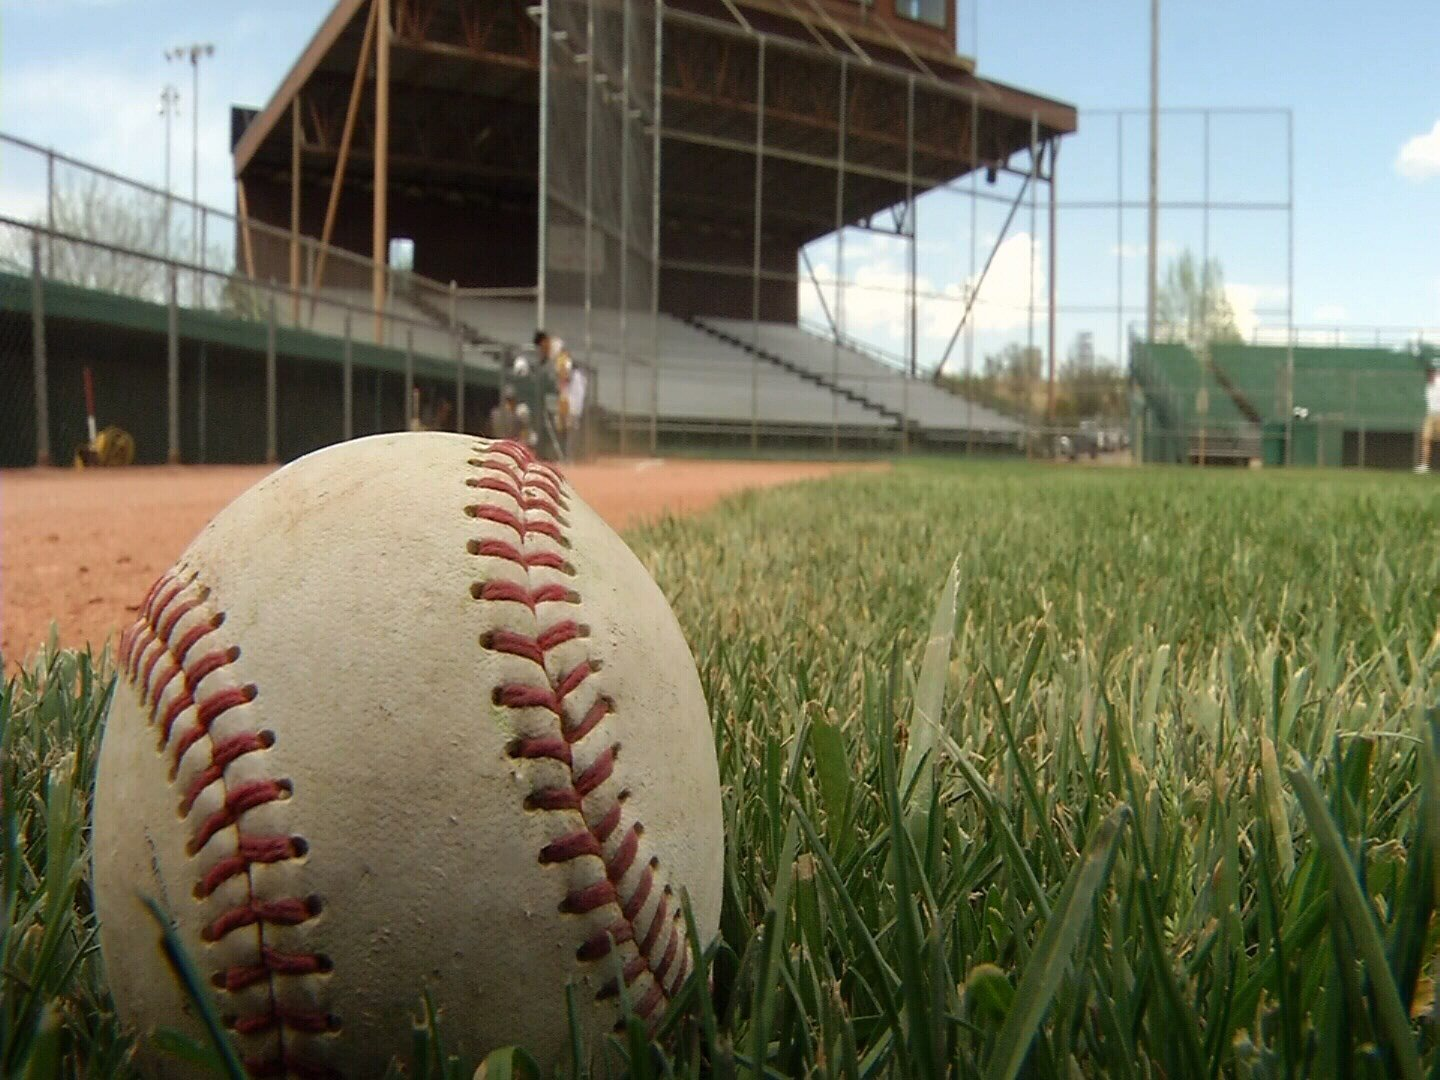 Community leaders in Pueblo are in talks with a Single-A Minor League Baseball team owner to relocate his club to the Steel City.